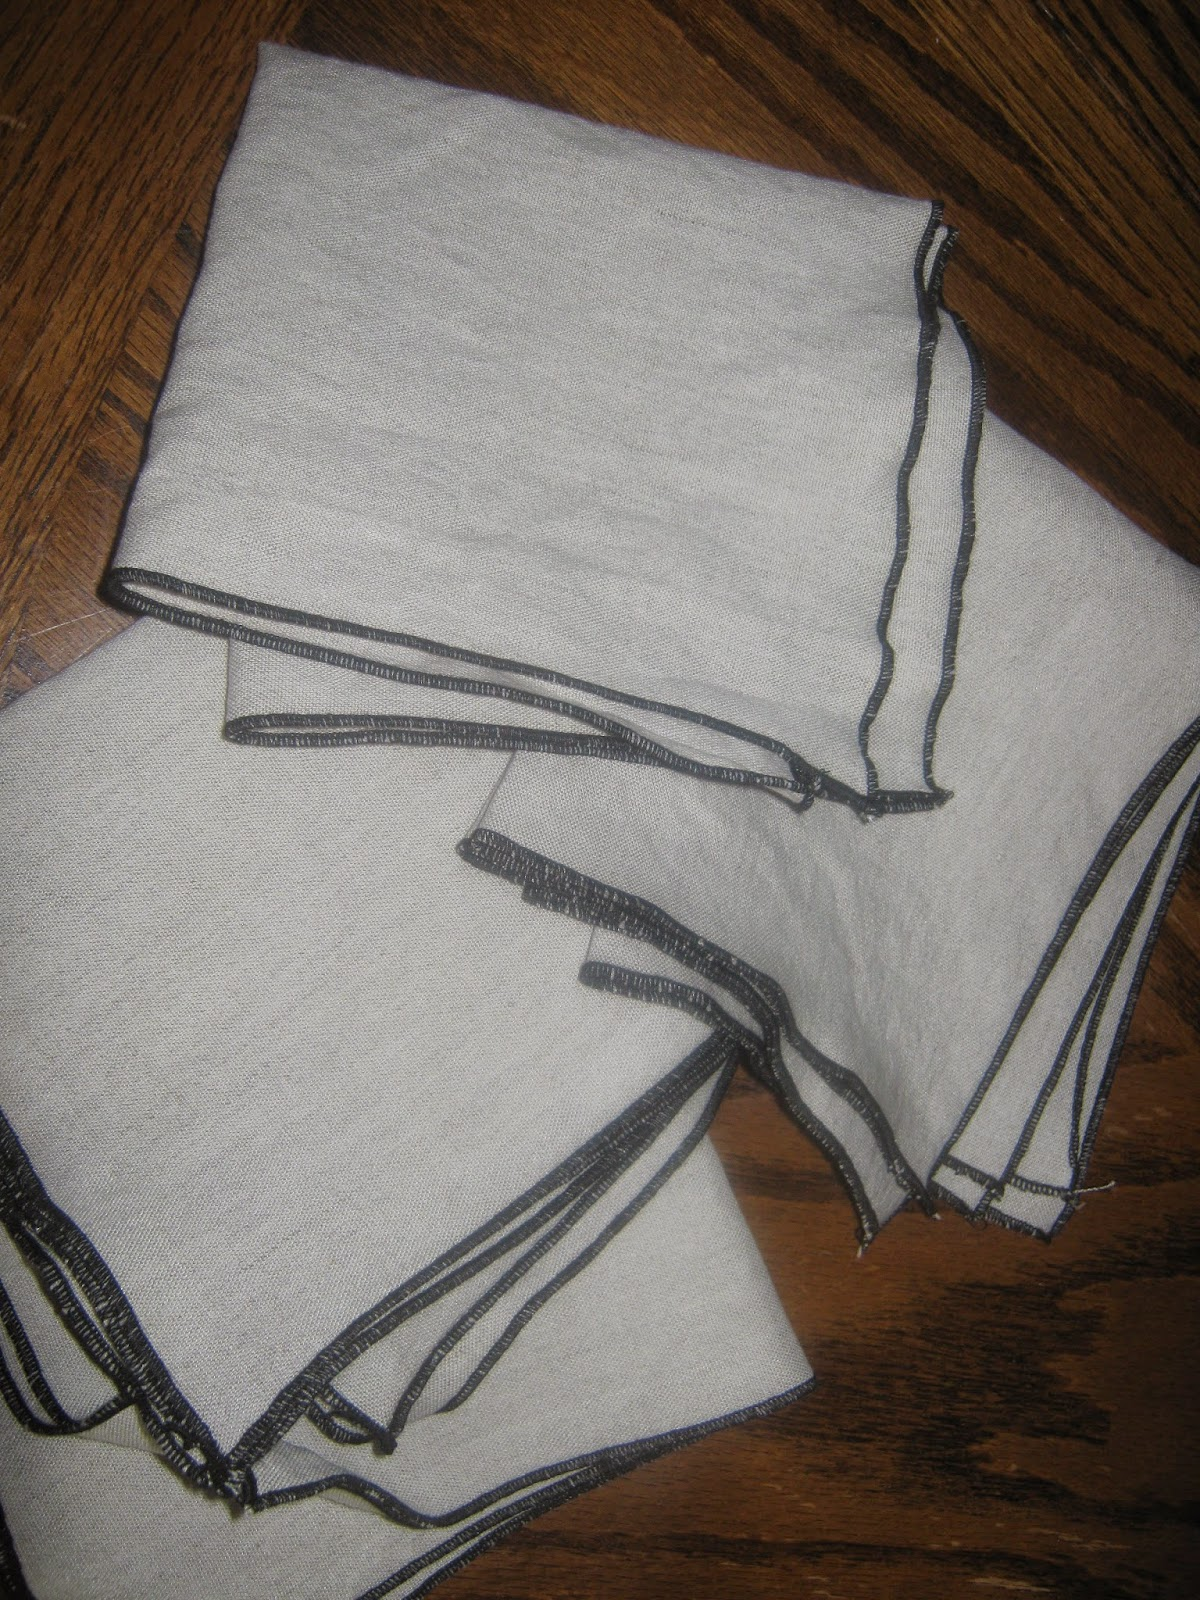 Rolled hem cloth napkins www.sewplus.blogspot.com